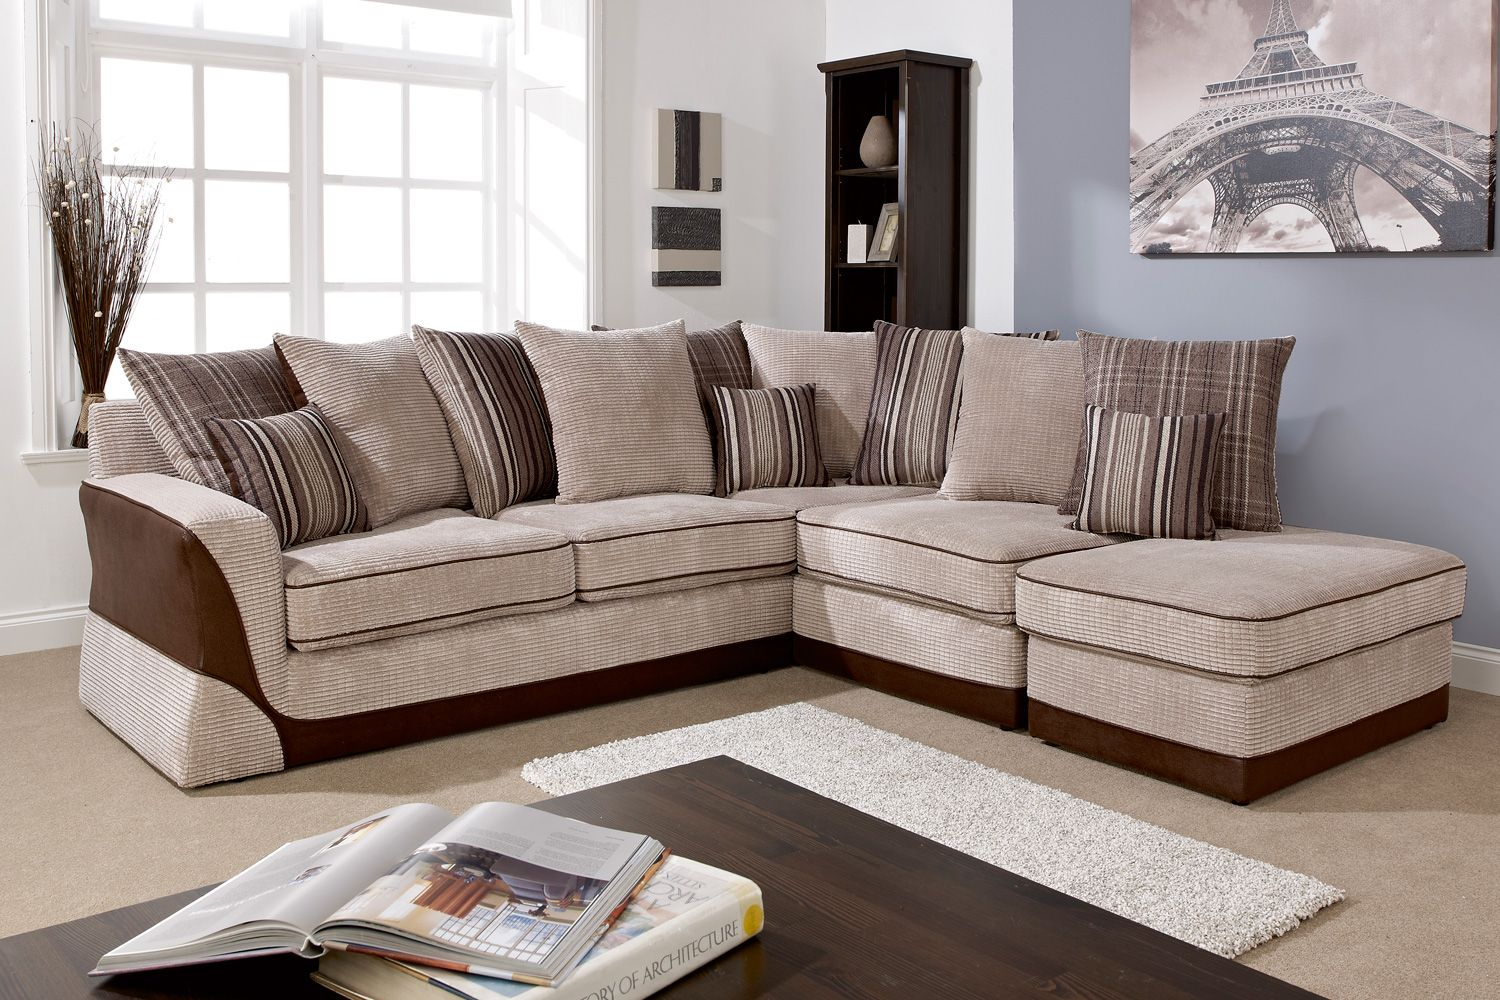 Highland Corner Sofa with Footstool from Harvey Norman